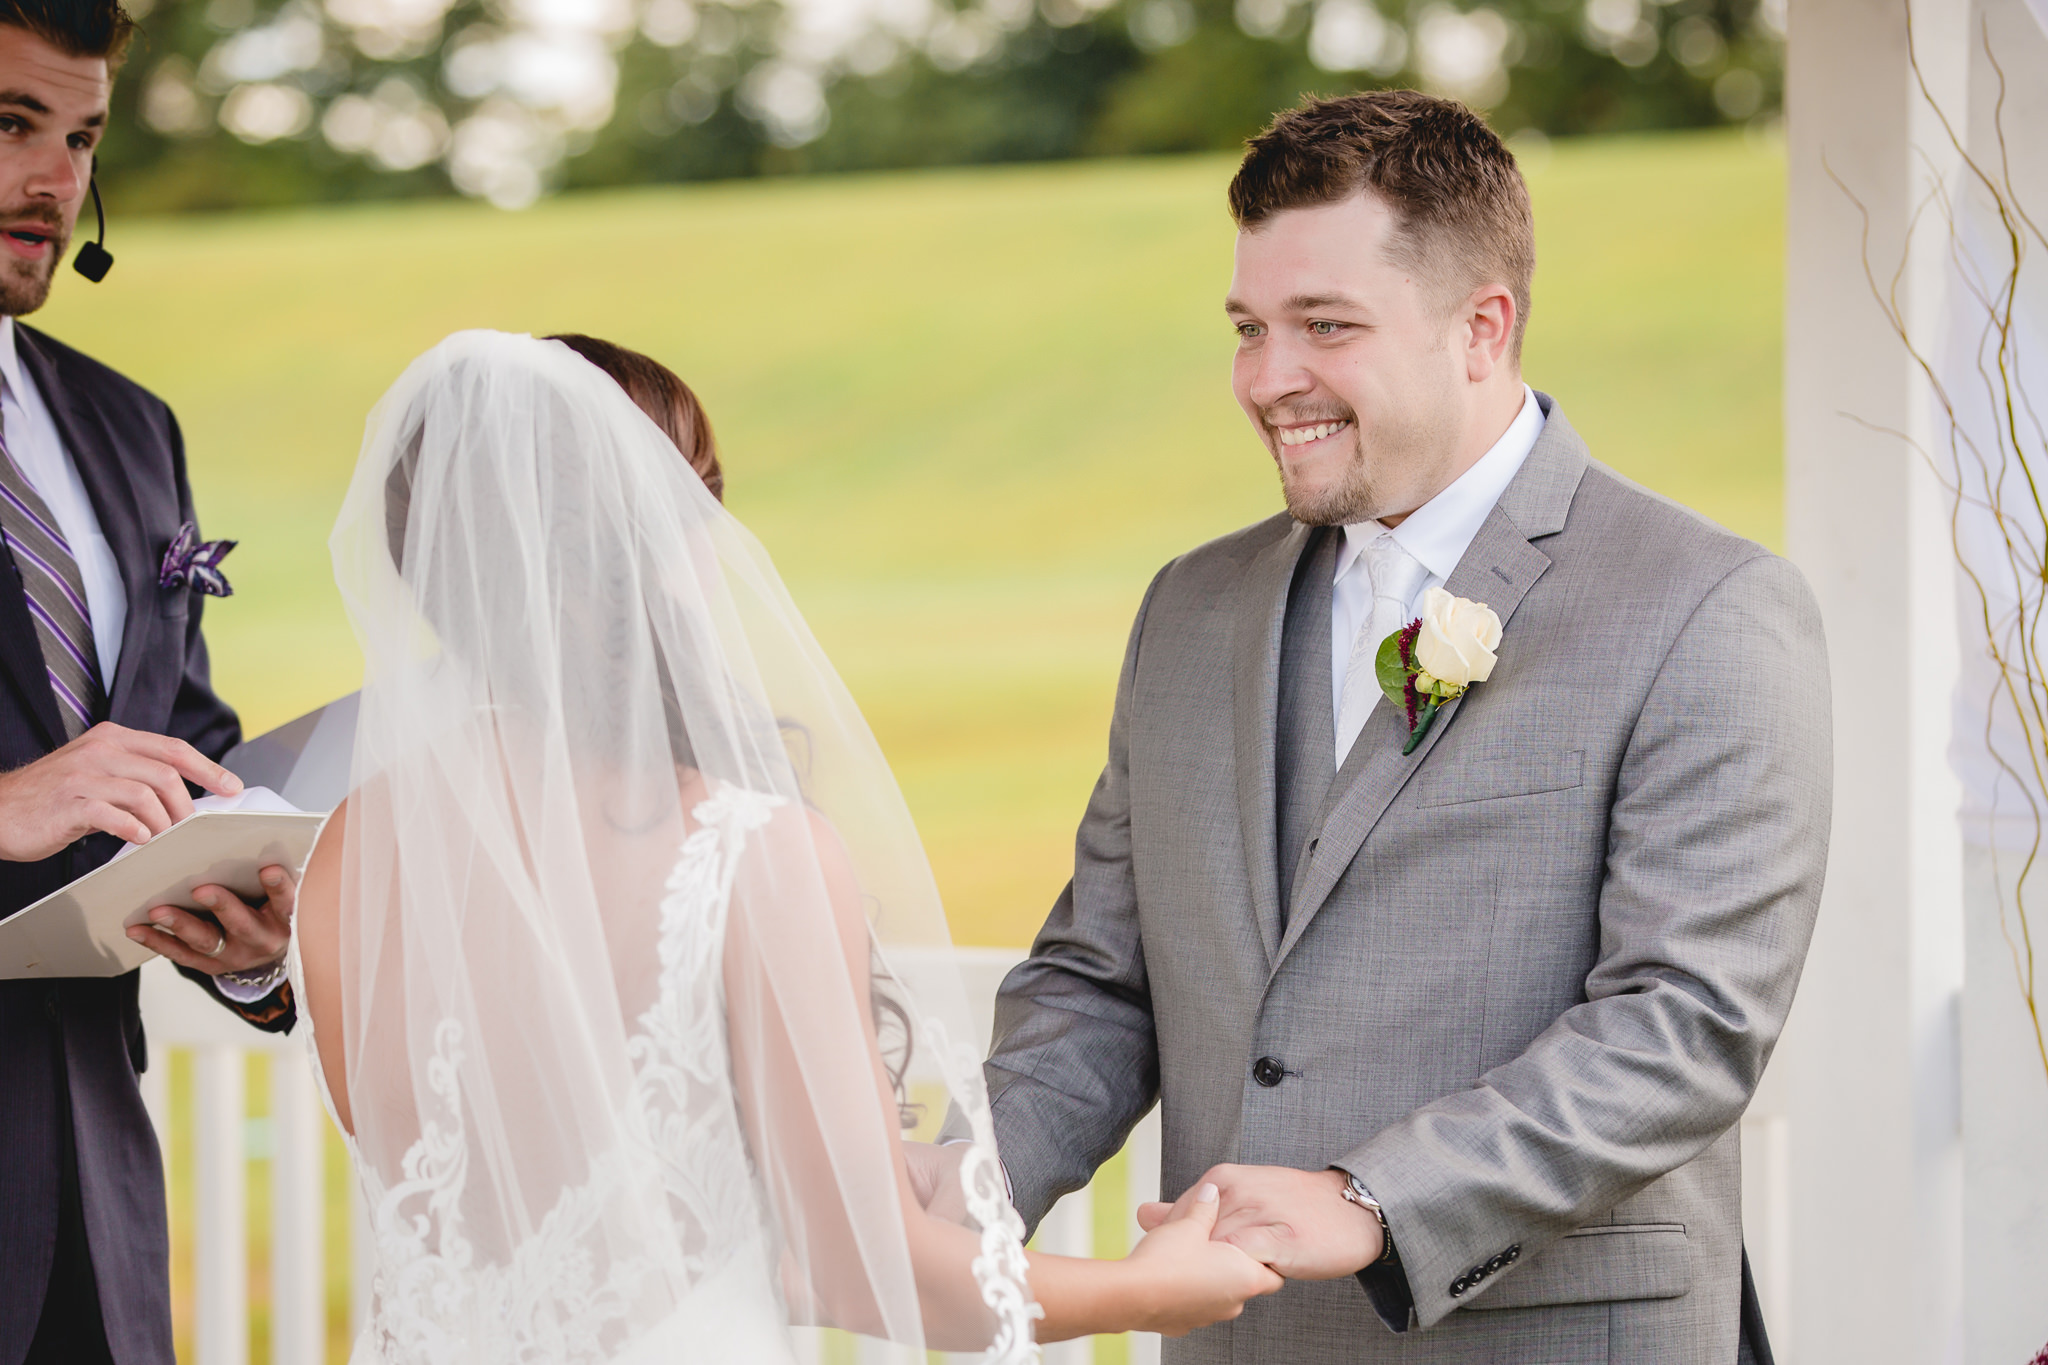 Groom smiles at his bride during a White Barn wedding ceremony